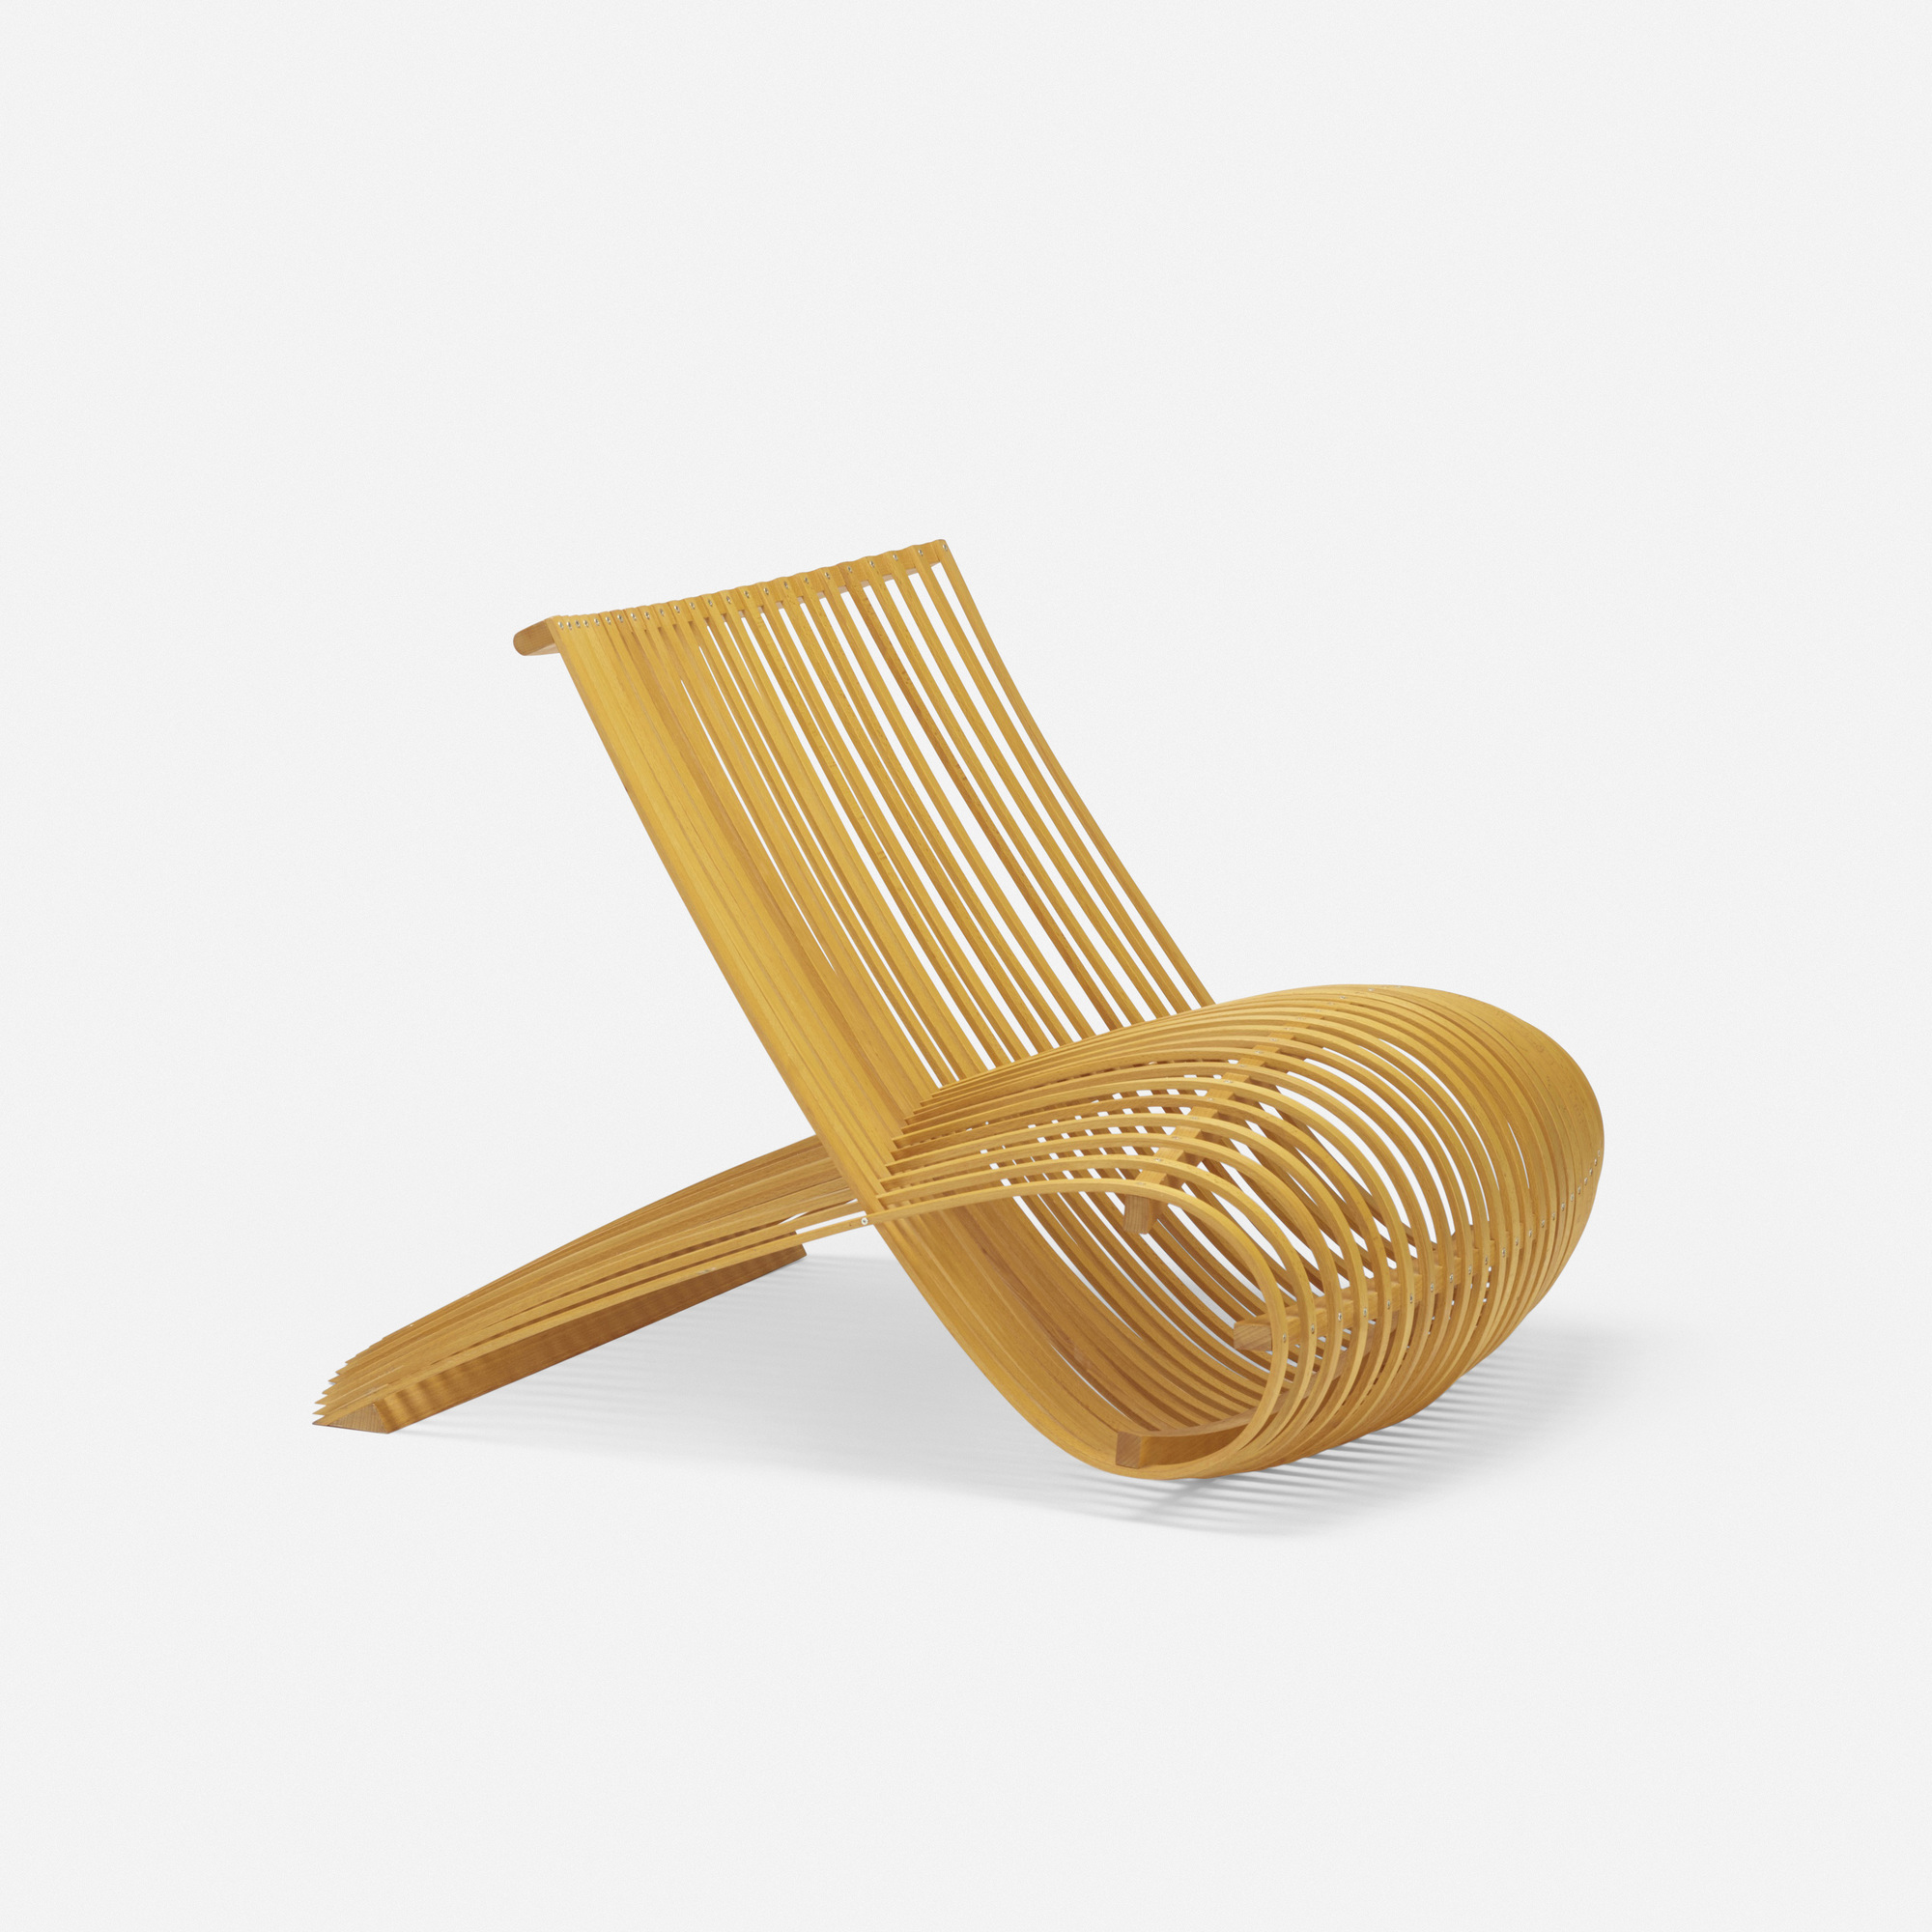 278: Marc Newson / Wooden chair (2 of 3)